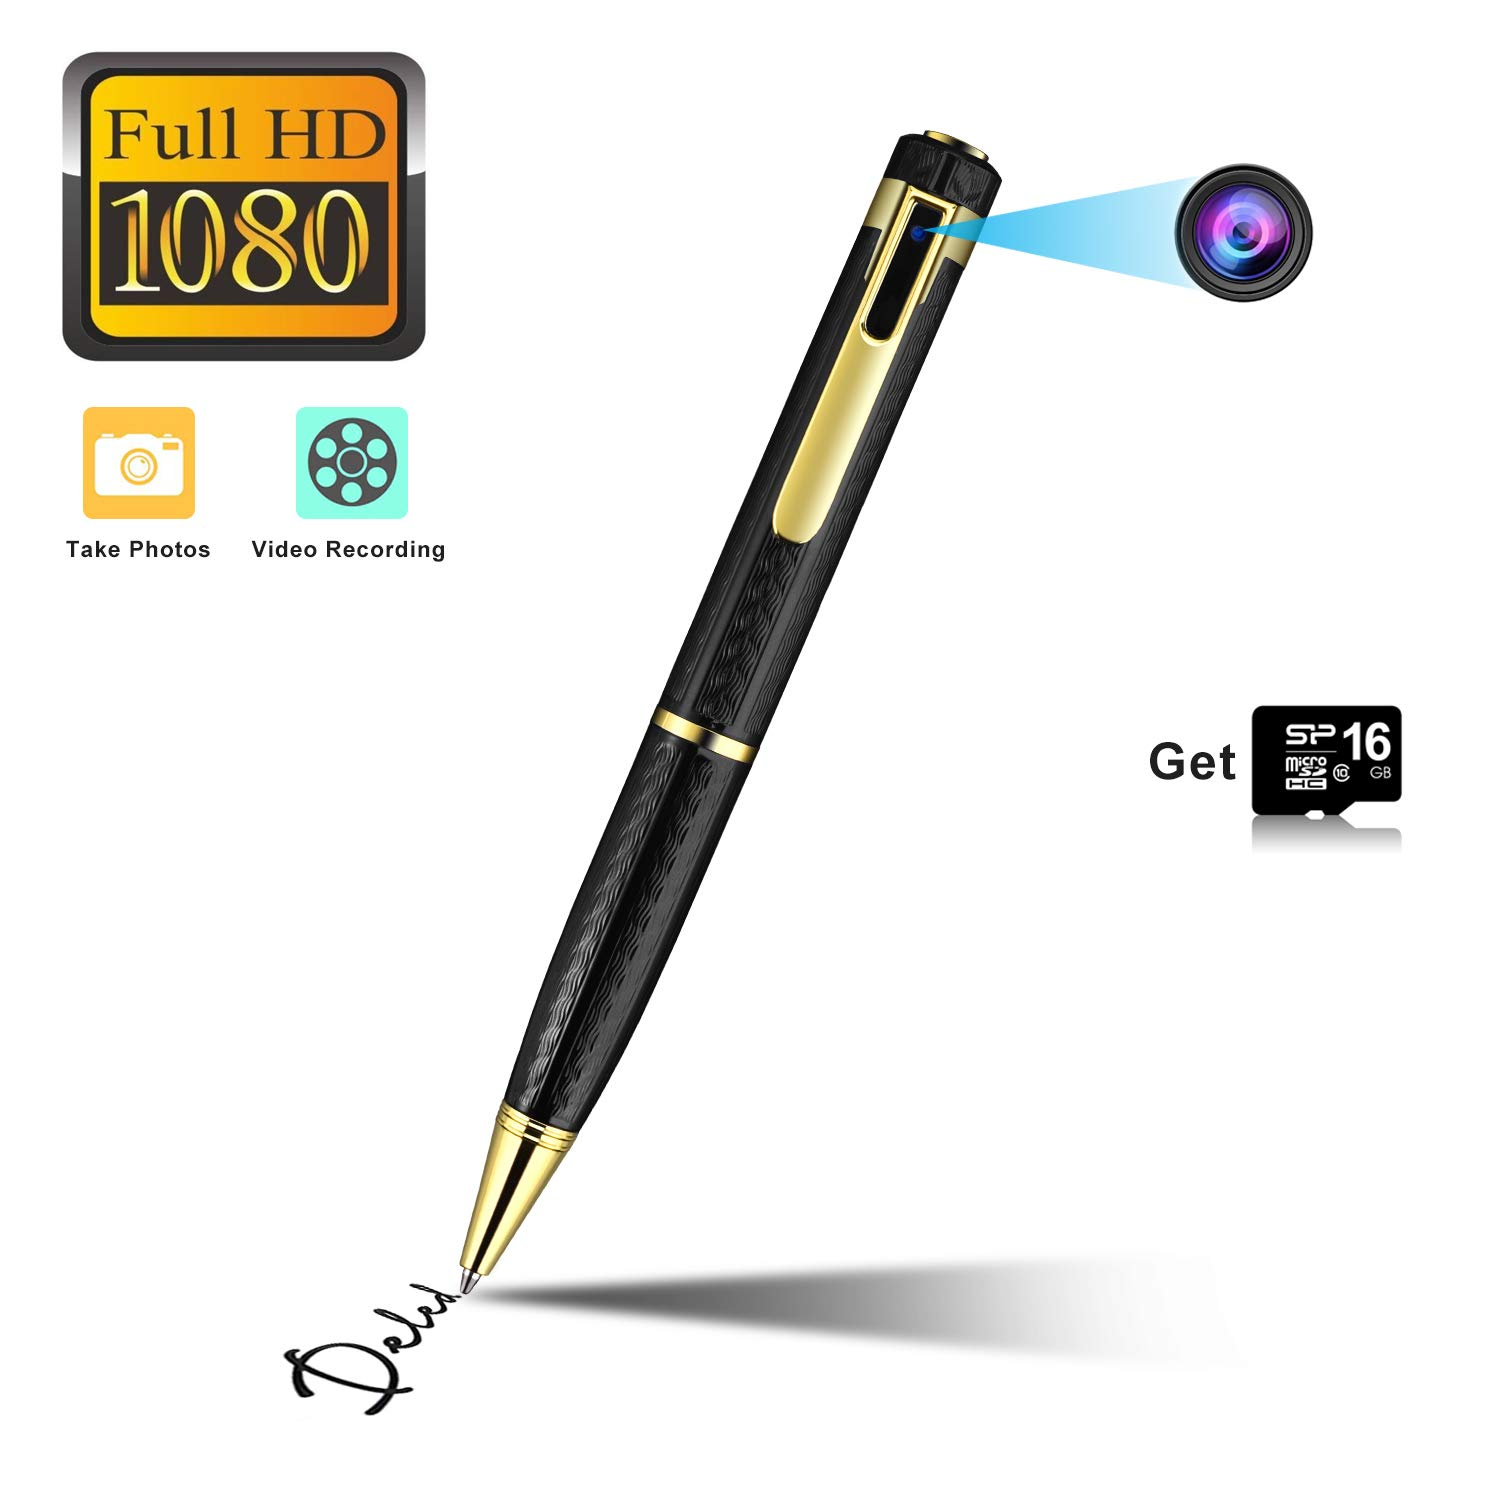 Hidden Camera Spy Camera Pen HD 1080P Camcorder Portable with 16GB Memory Card Pocket Cam Covert Camera for Business and Conference (Black)